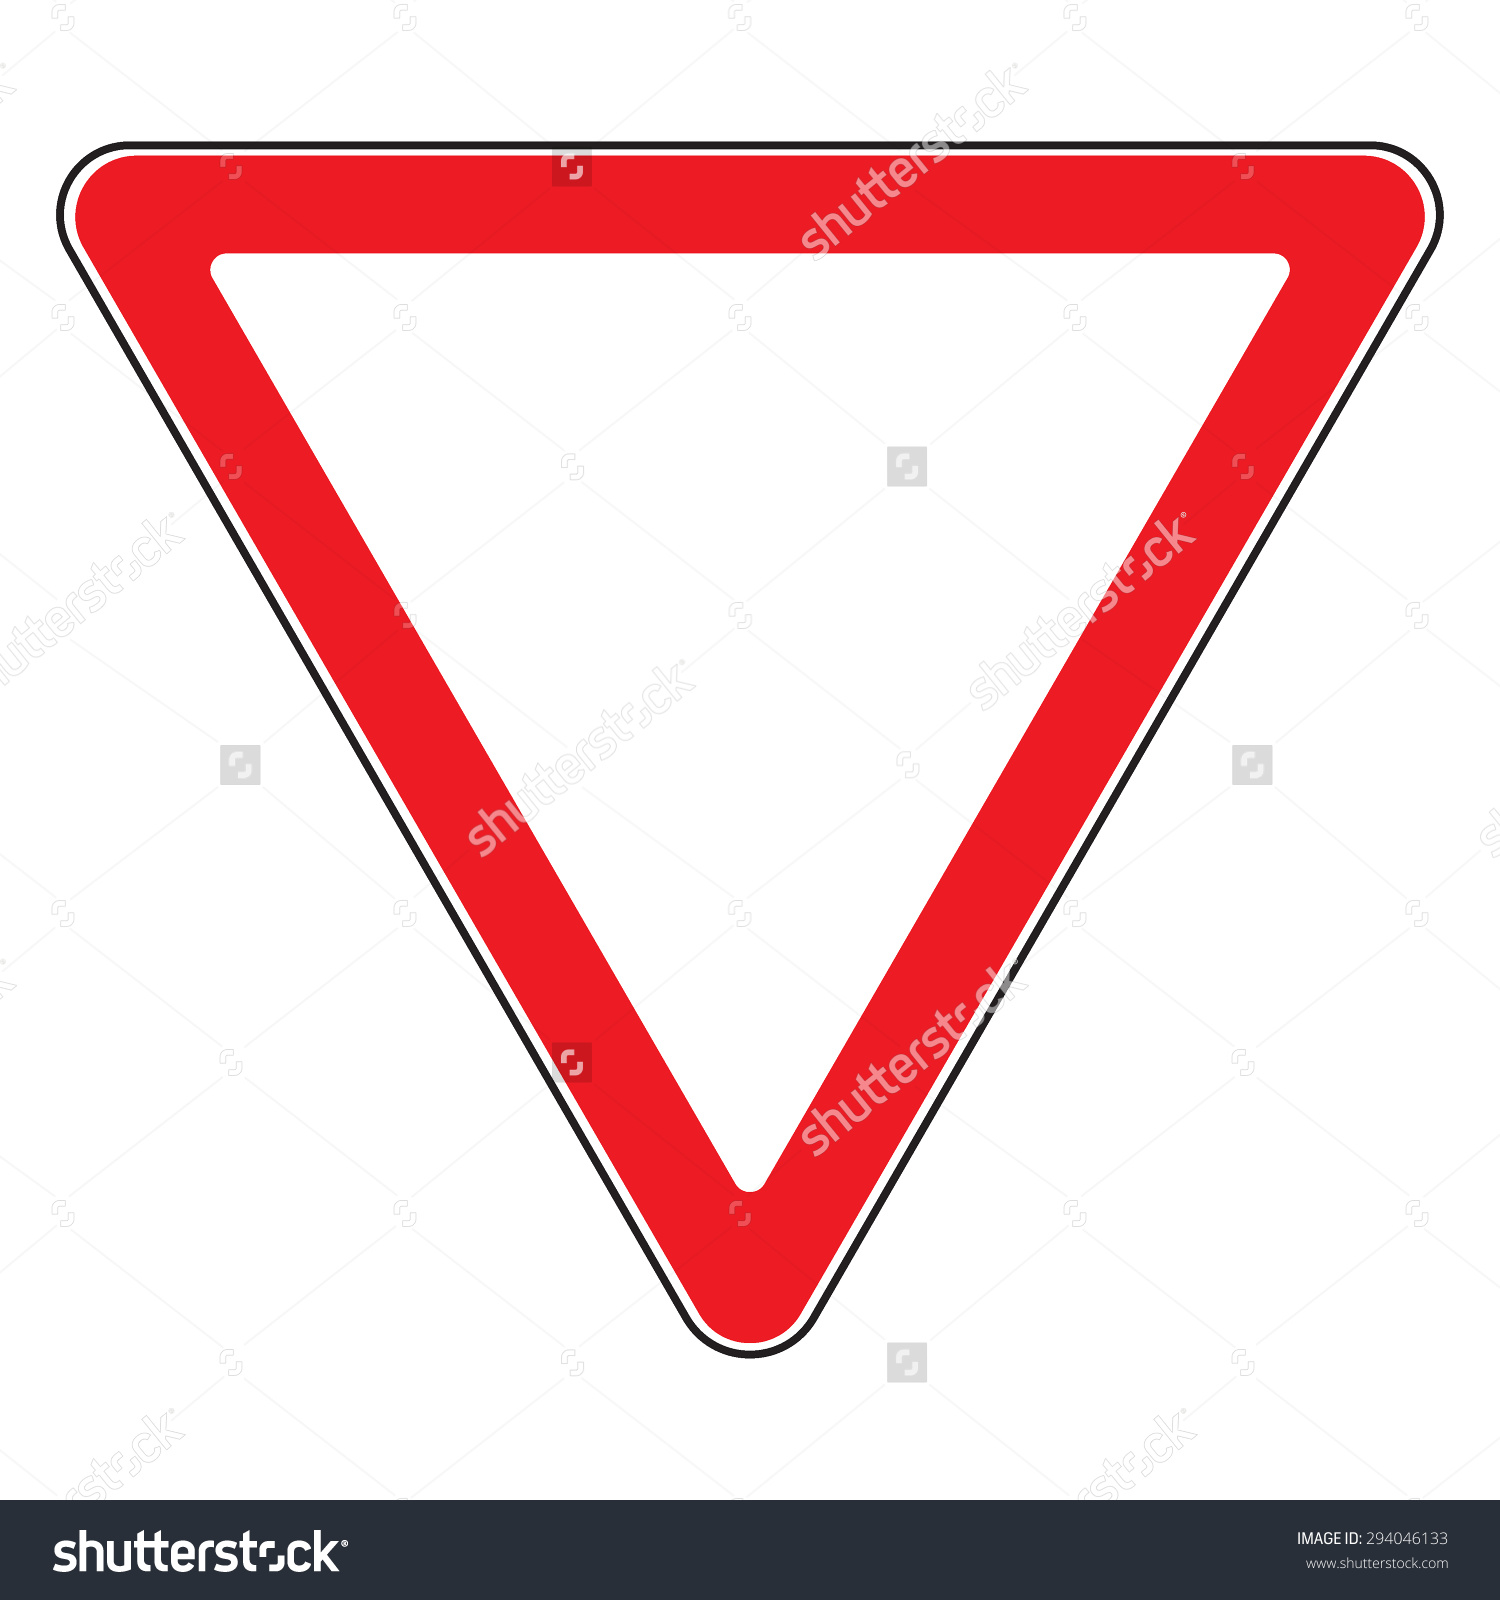 Design Yield Triangular Road Sign Road Stock Vector 294046133.